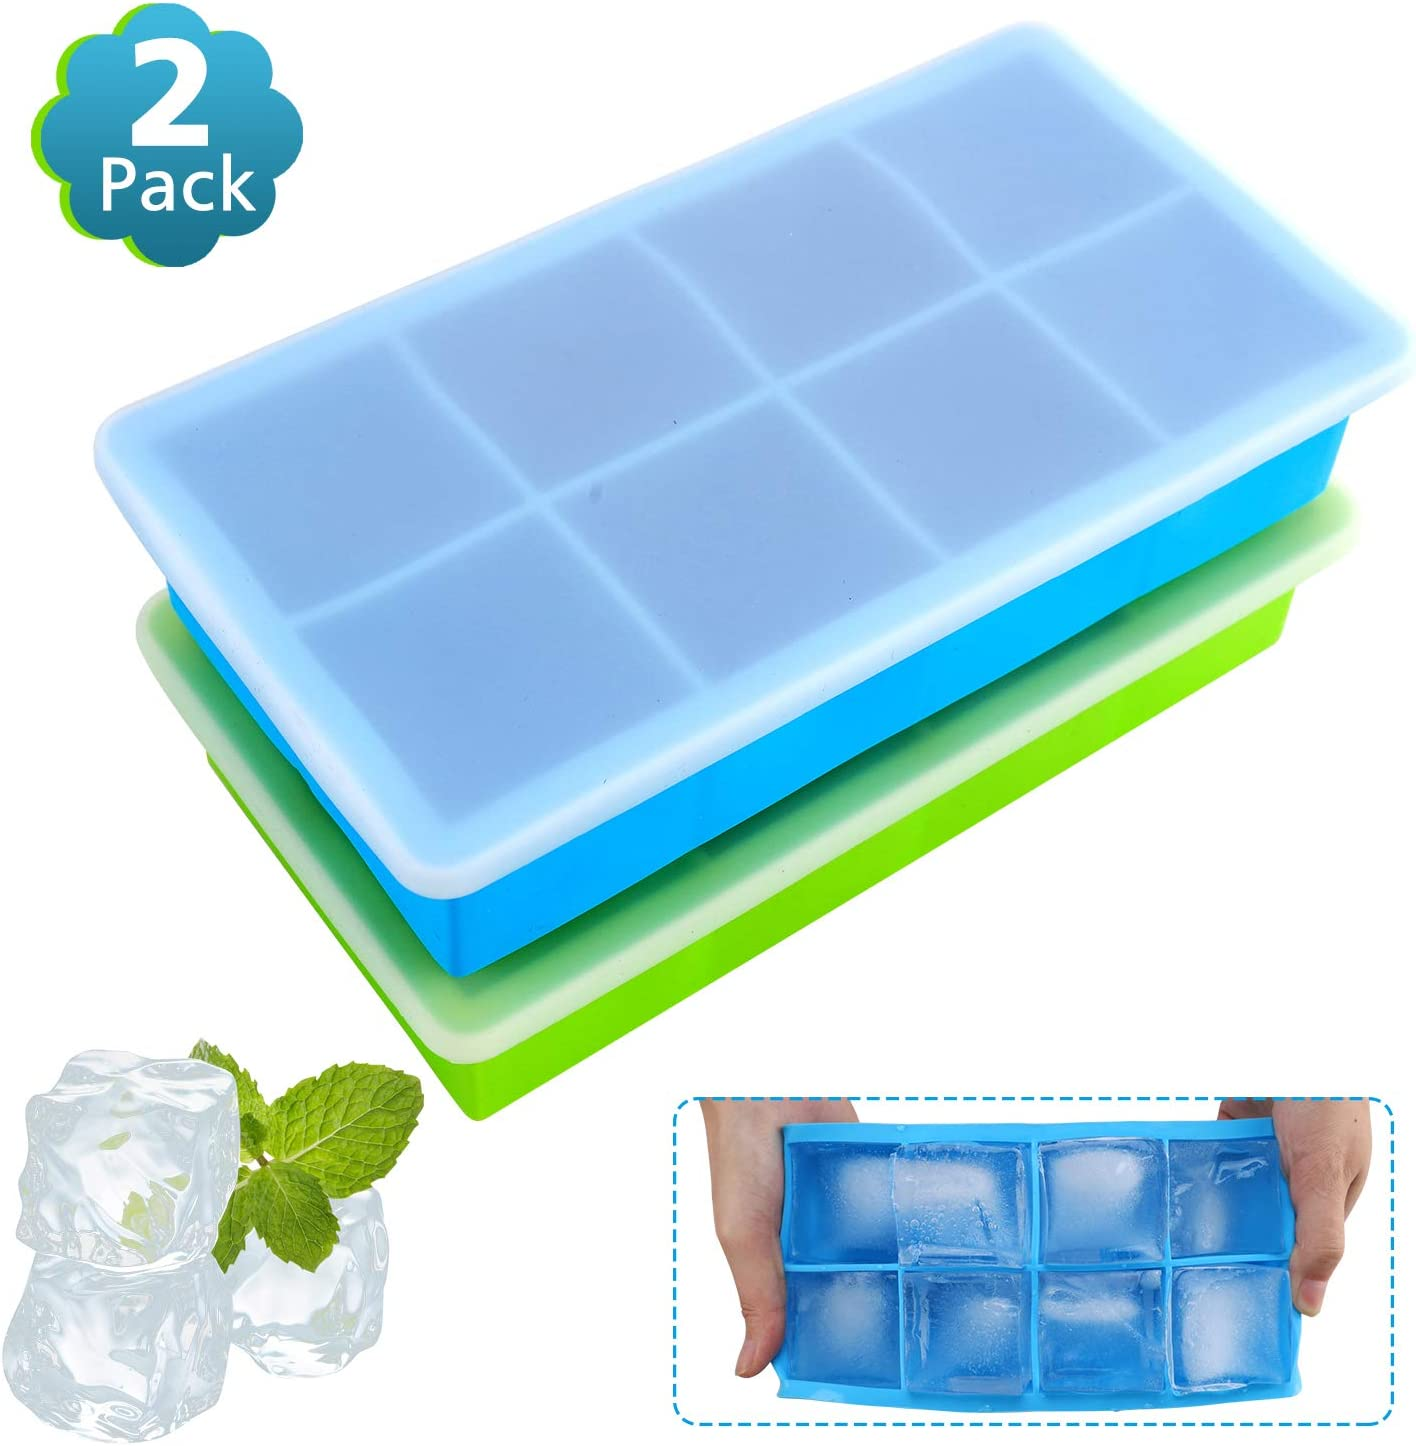 (2 Pack) Food Grade Large Silicone Ice Cube Trays,Limque 8 Ice Cube Mold with Removable Lid - for Whiskey, Cocktails, Ice Coffee Drinks, Juices, Baby Complementary Foods BPA Free